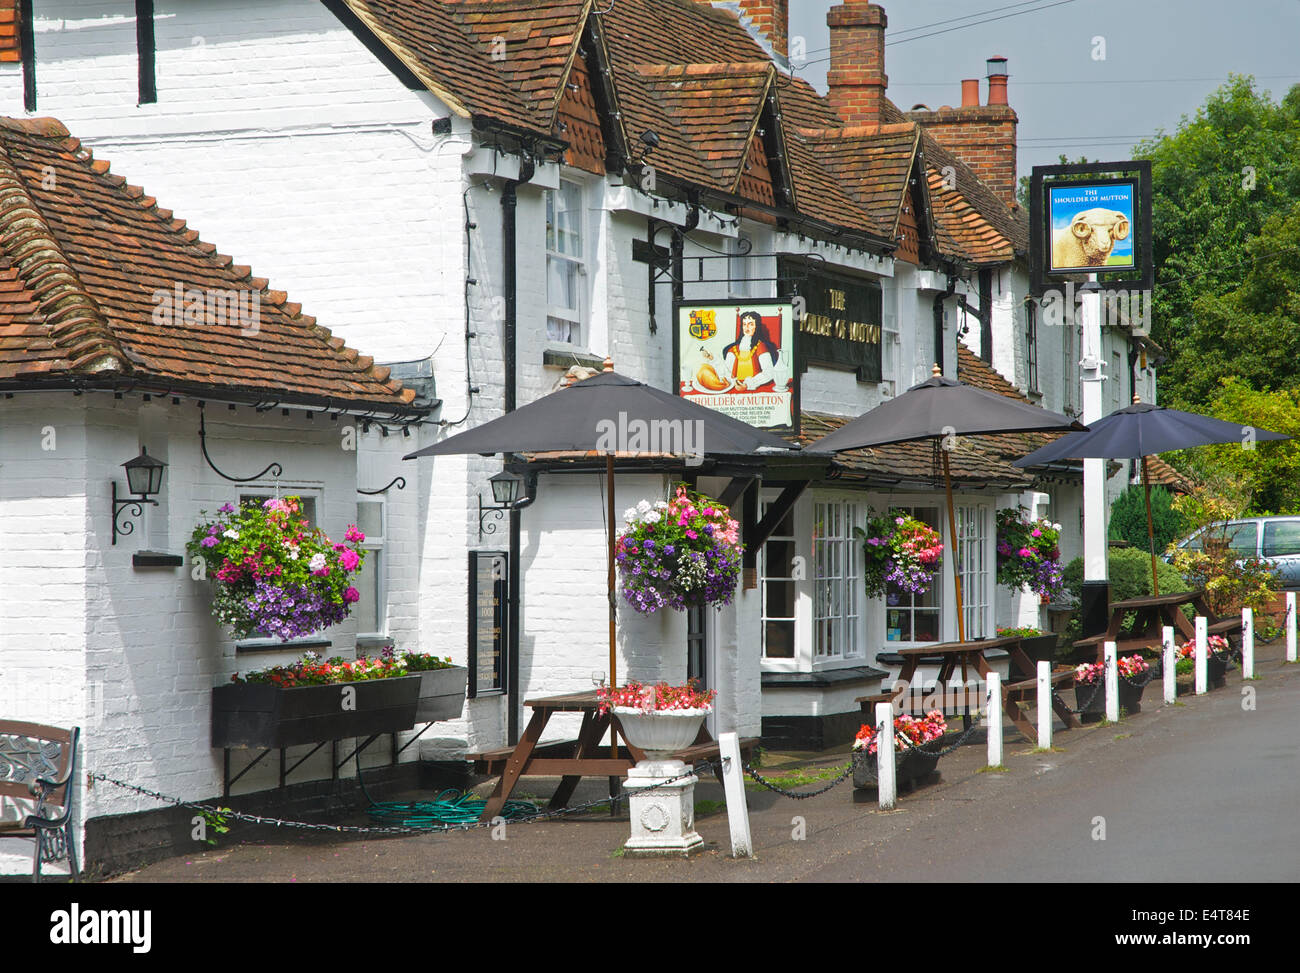 Pub, la spalla di montone, a Hazeley Heath, vicino Hartley Wintney, Hampshire, Inghilterra, Regno Unito Immagini Stock